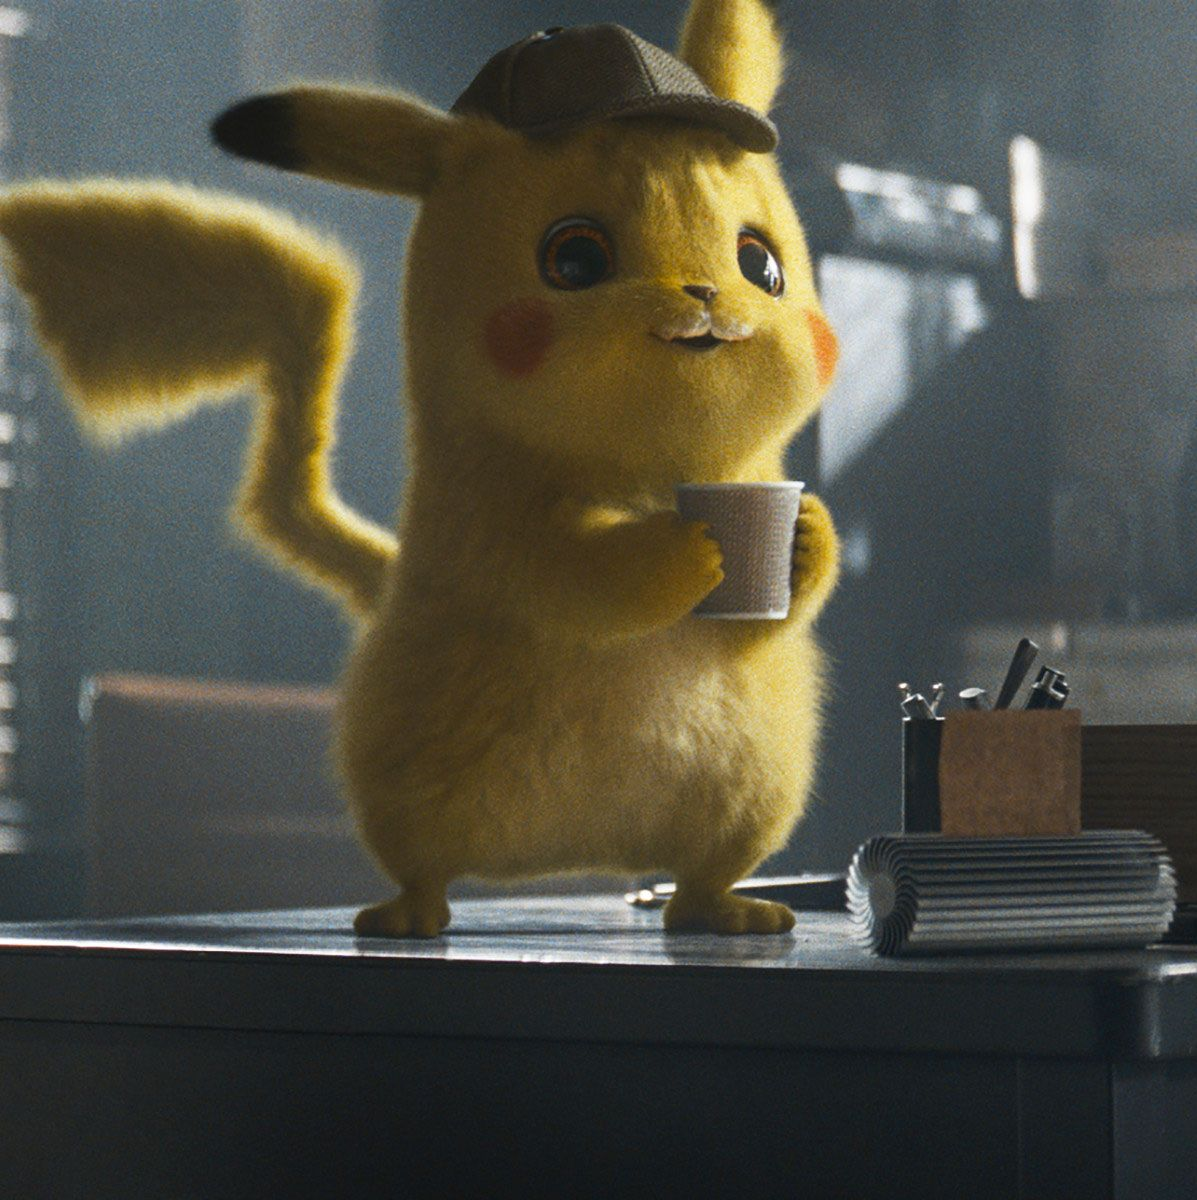 Detective Pikachu S Untold 7 Year Journey To The Screen